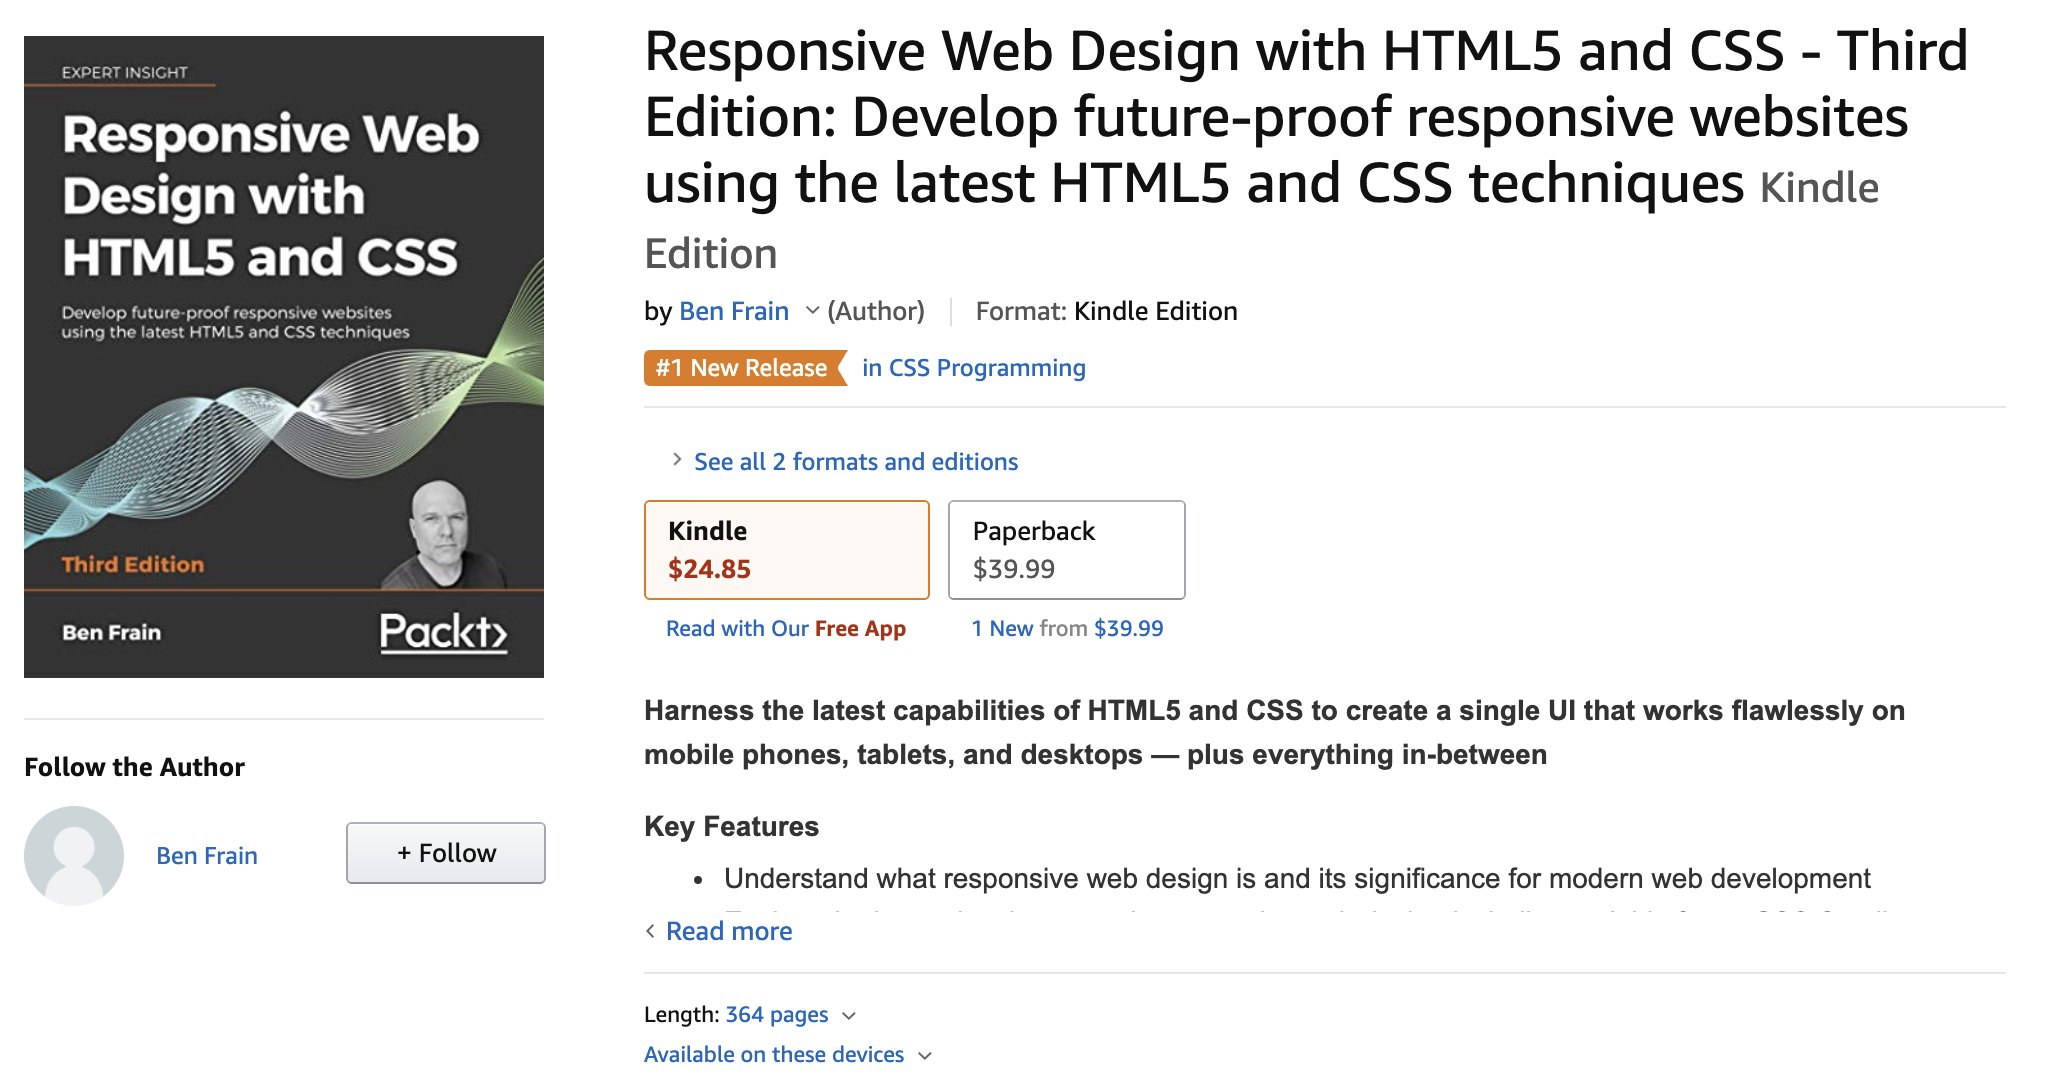 Ben Frain On Twitter It S Here You Can Pre Order Now Amazon S 1 New Release In Css Programming Responsive Web Design With Html5 And Css Third Edition Https T Co Sp8nuwaefm I D Love It If